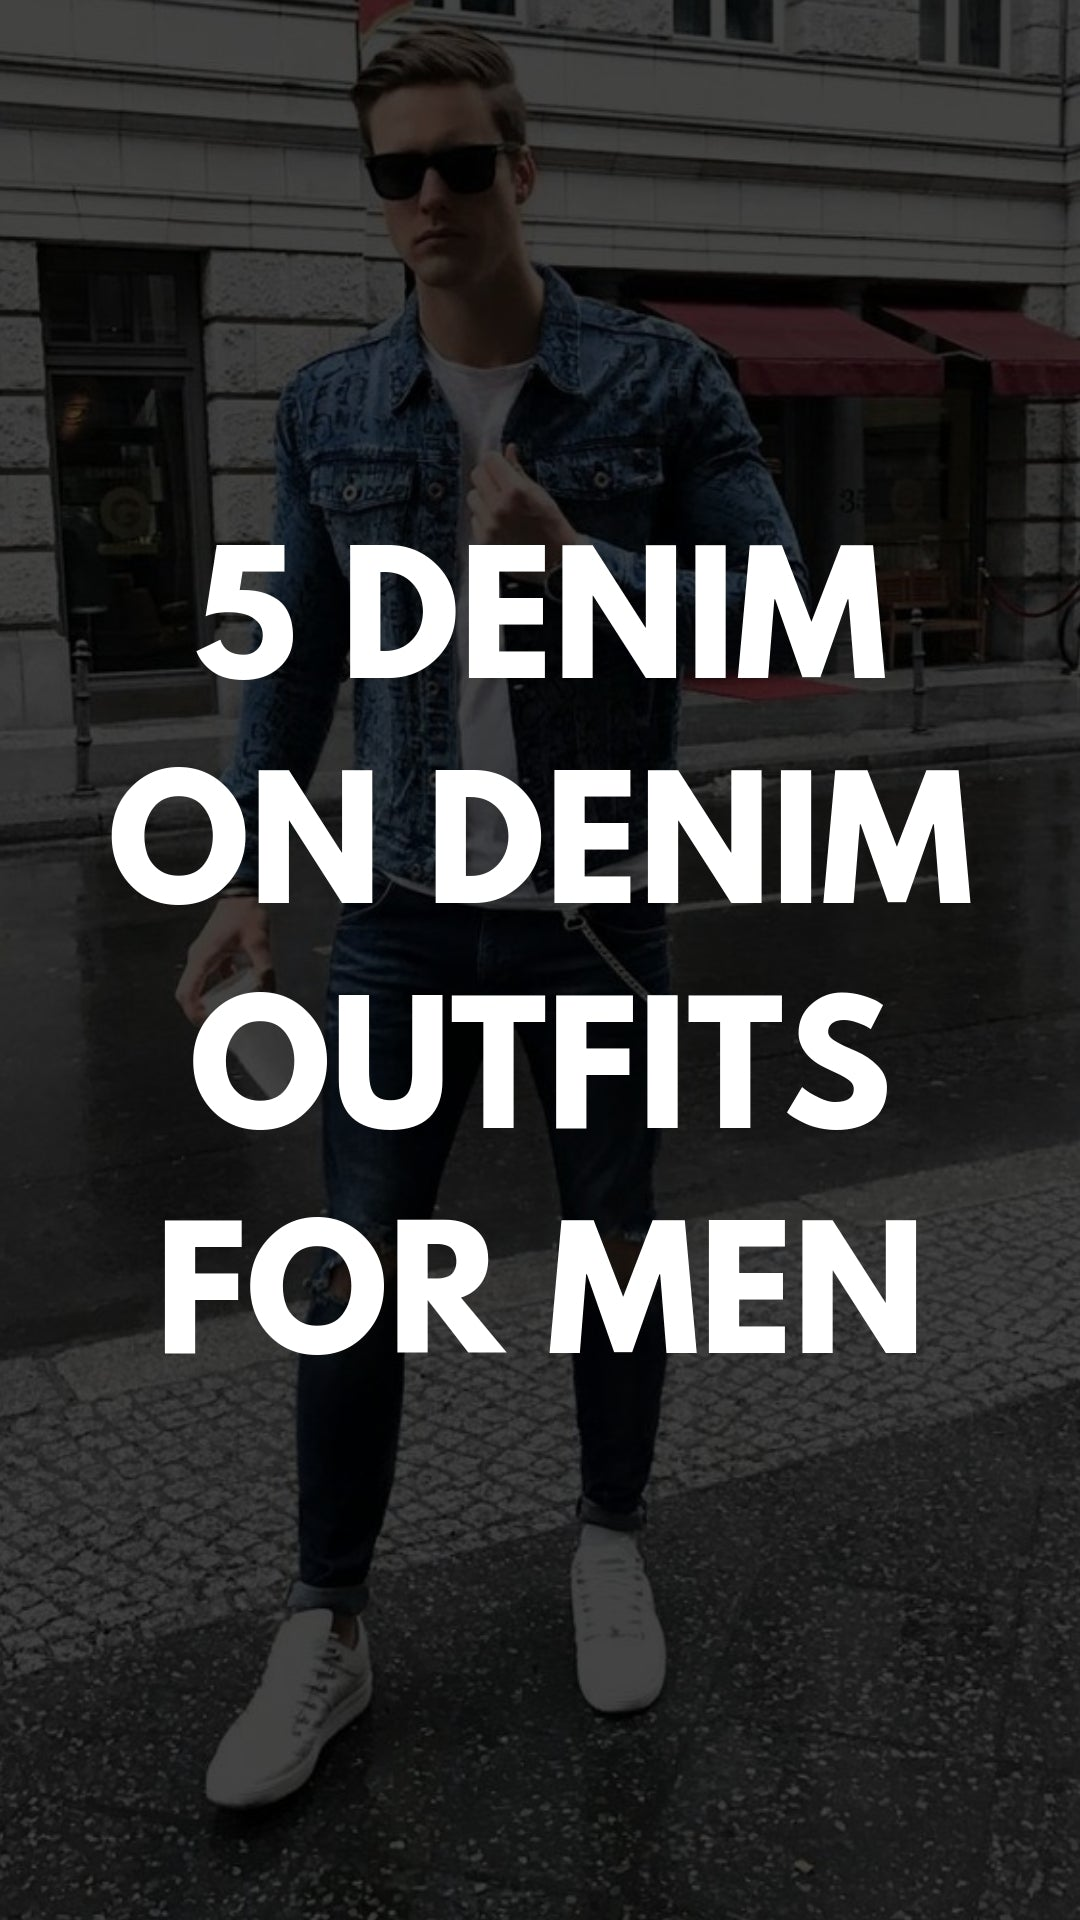 Denim On Denim For Men - 10 Coolest Outfit Idea #denimondenim #outfits #doubledenim #mensfashion